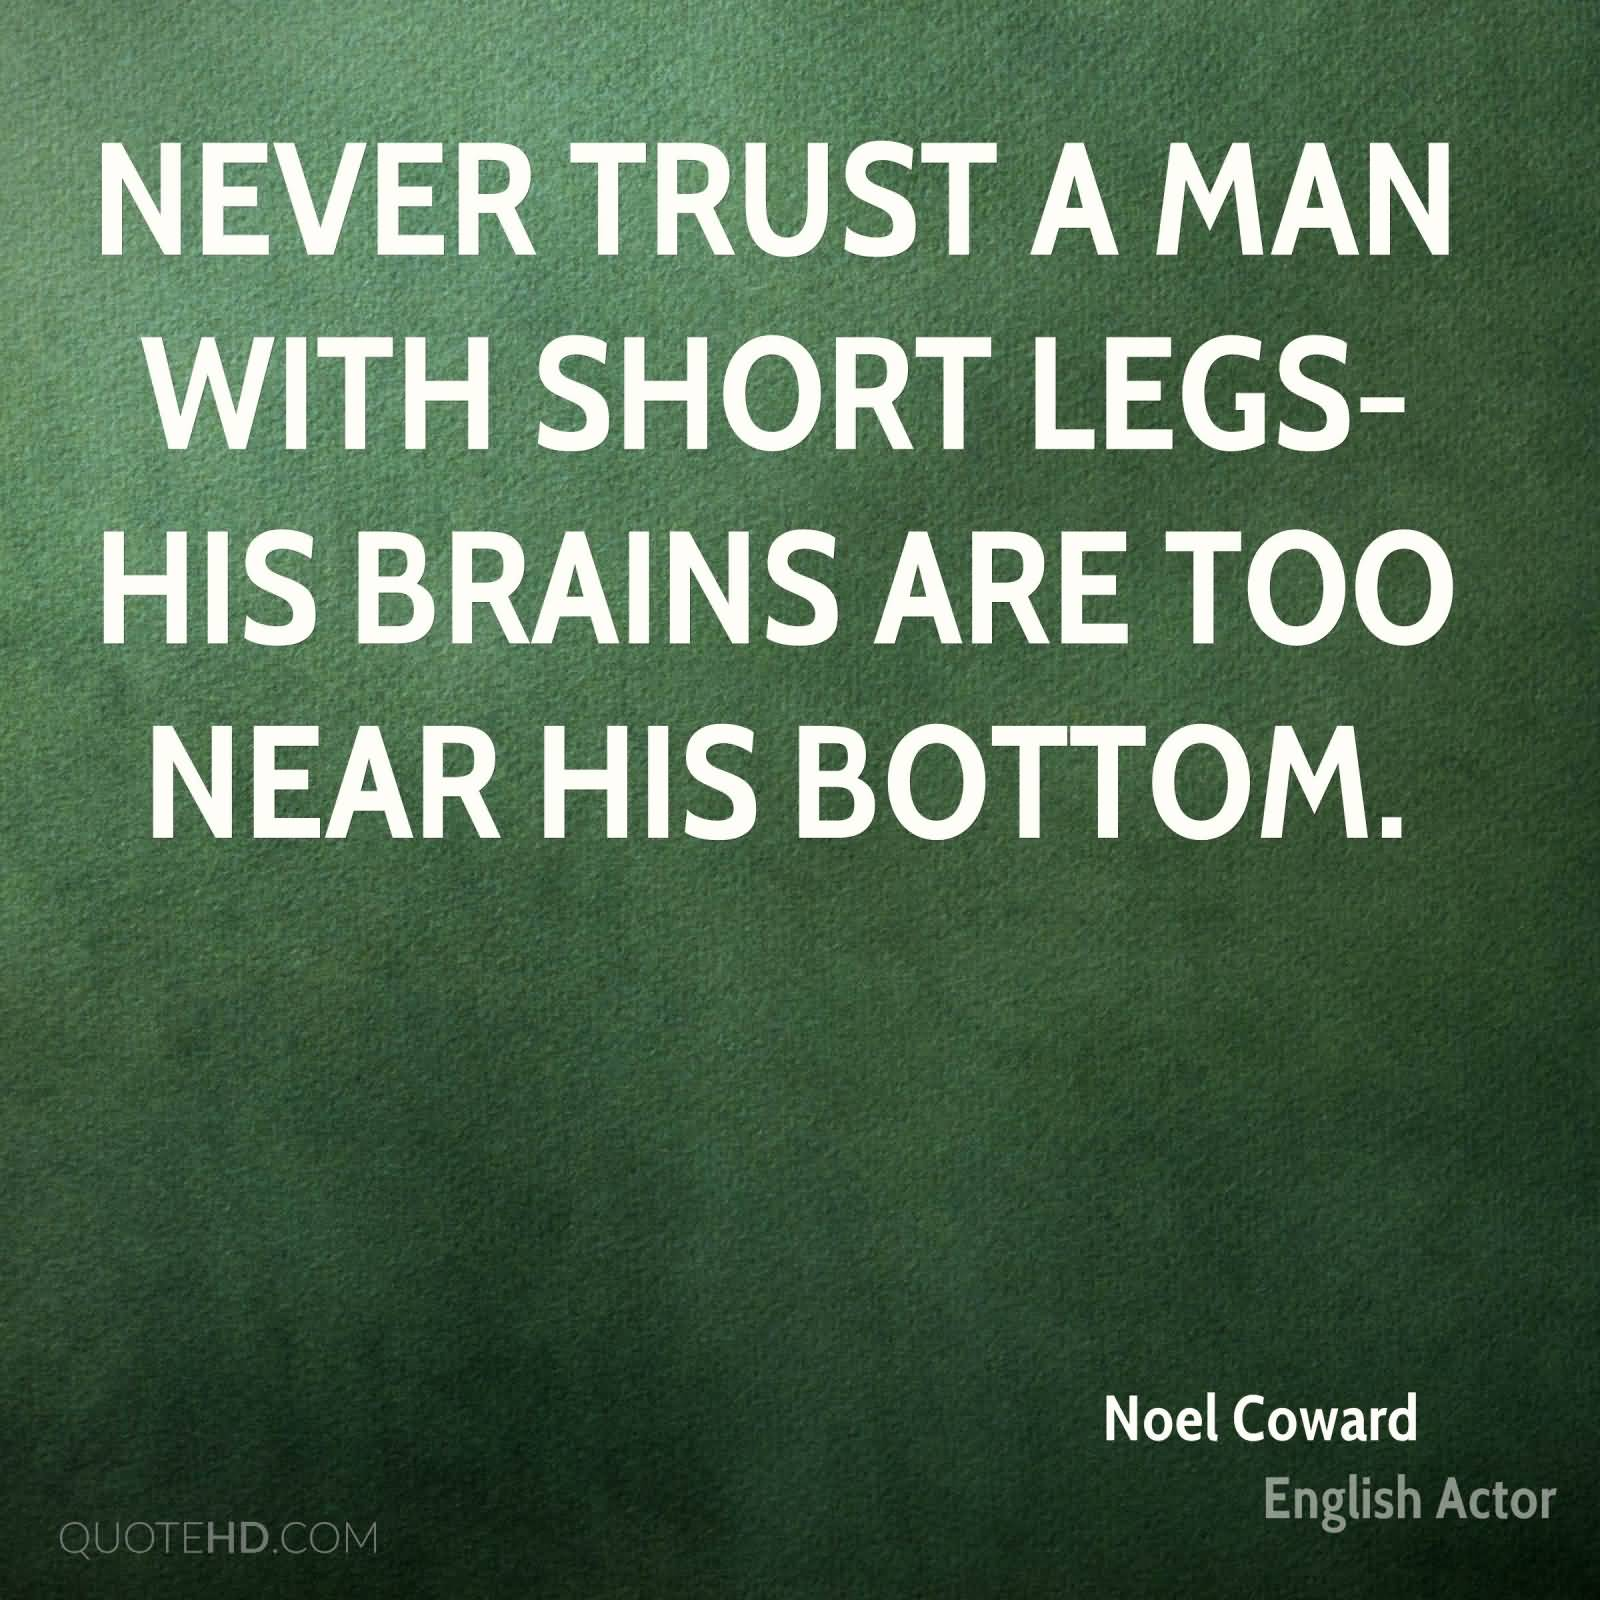 Trust Quotes: 62 All Time Best Never Trust Quotes And Sayings